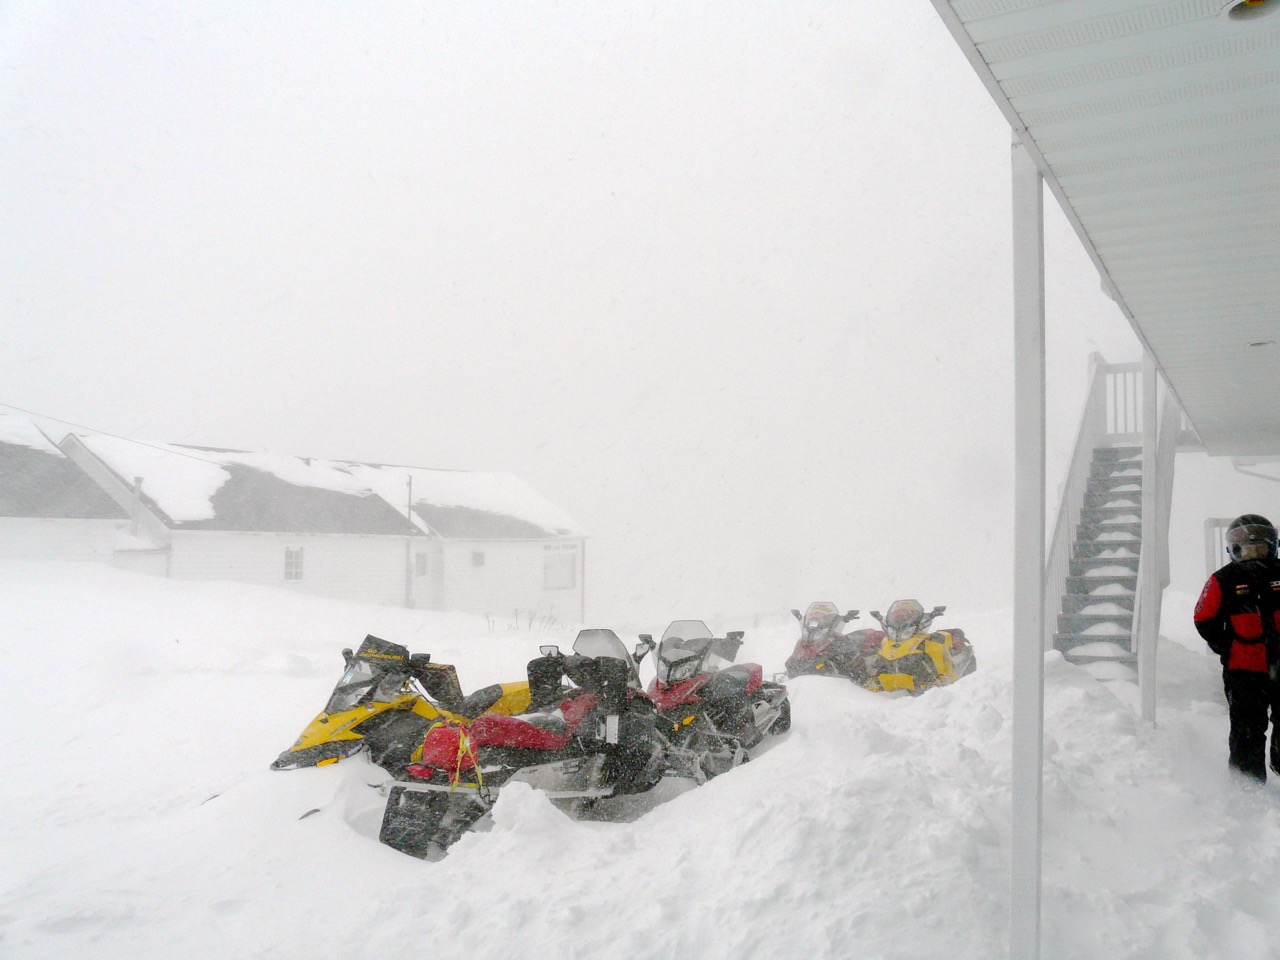 Cold plus deep snow make staying warm while snowmobiling more of a challenge.